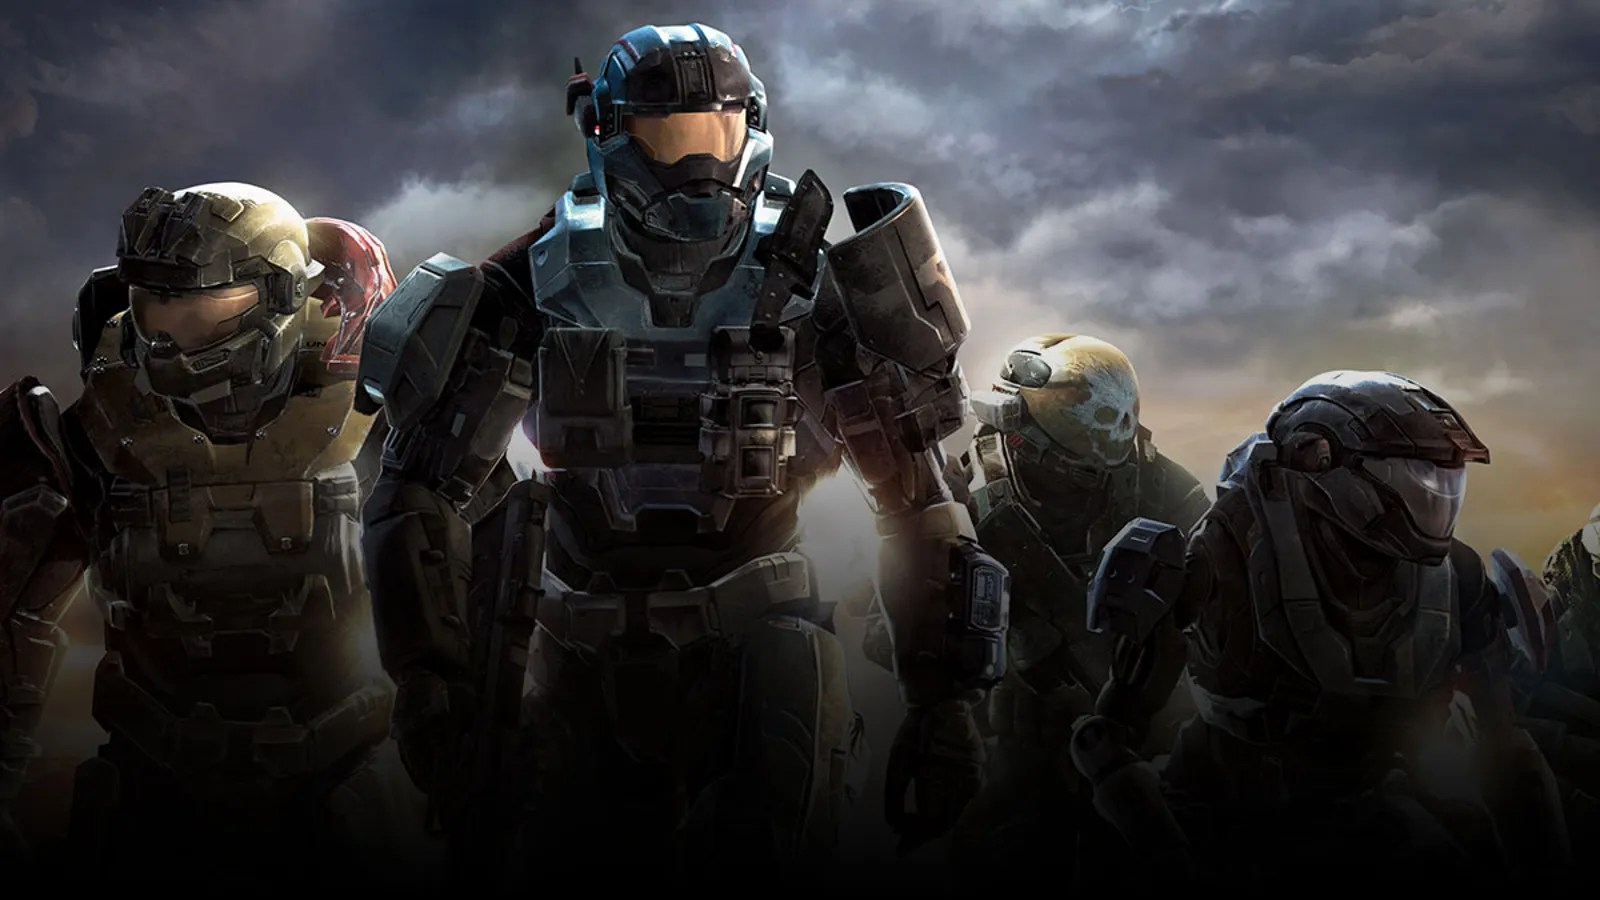 Halo Wallpaper Fall Of Reach Halo Reach Doesn T Run Very Well On Xbox One Update